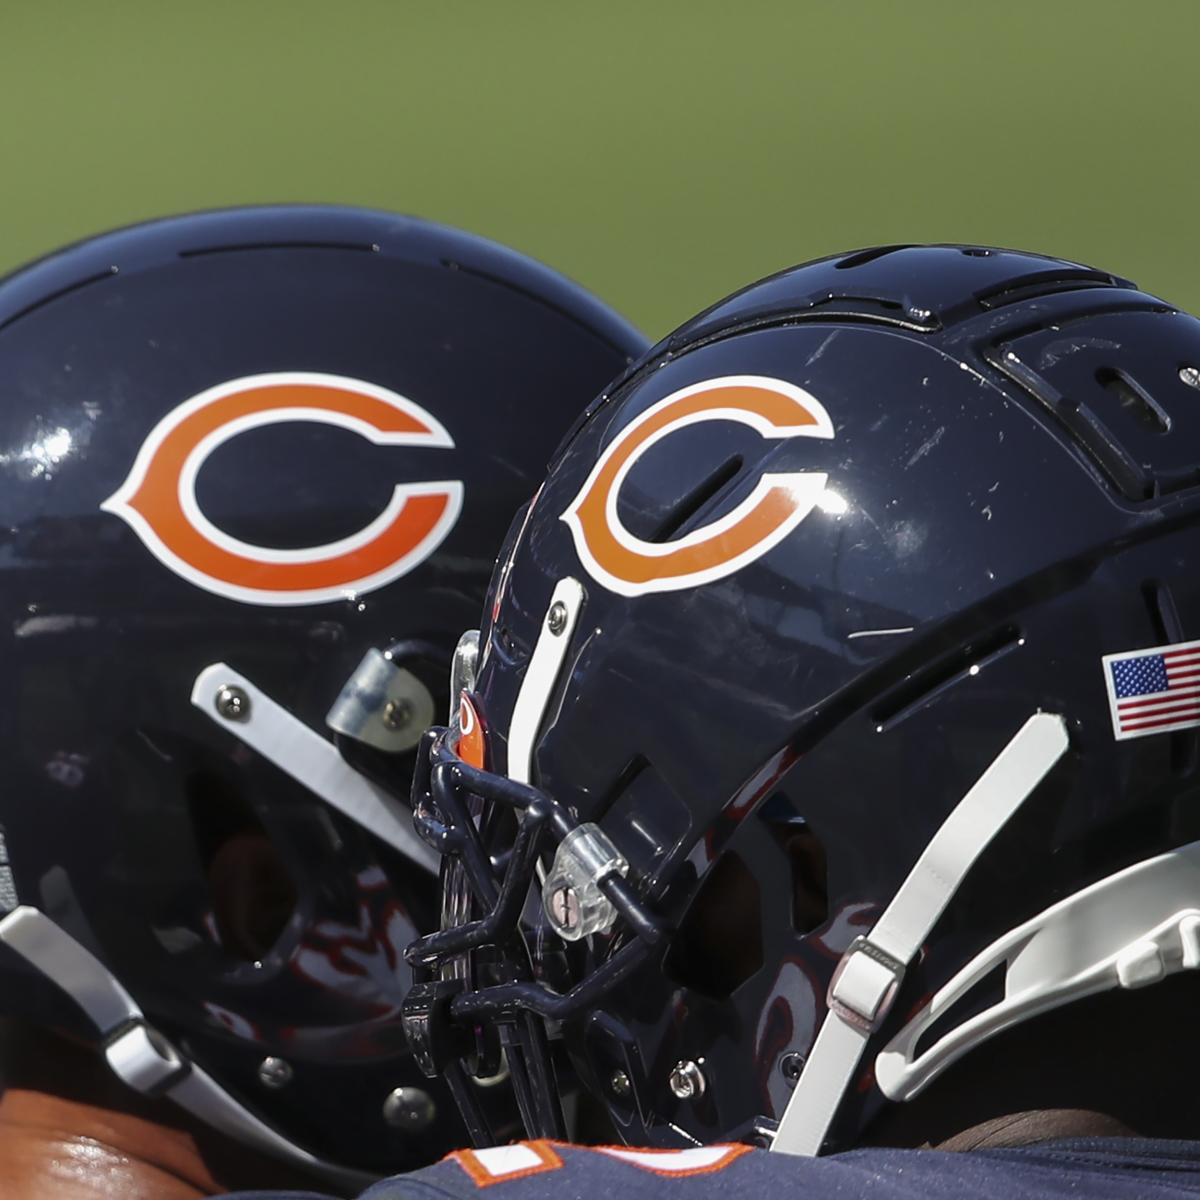 Report: Bears Practice Squad Player, Chiefs Coach Test Positive for COVID-19